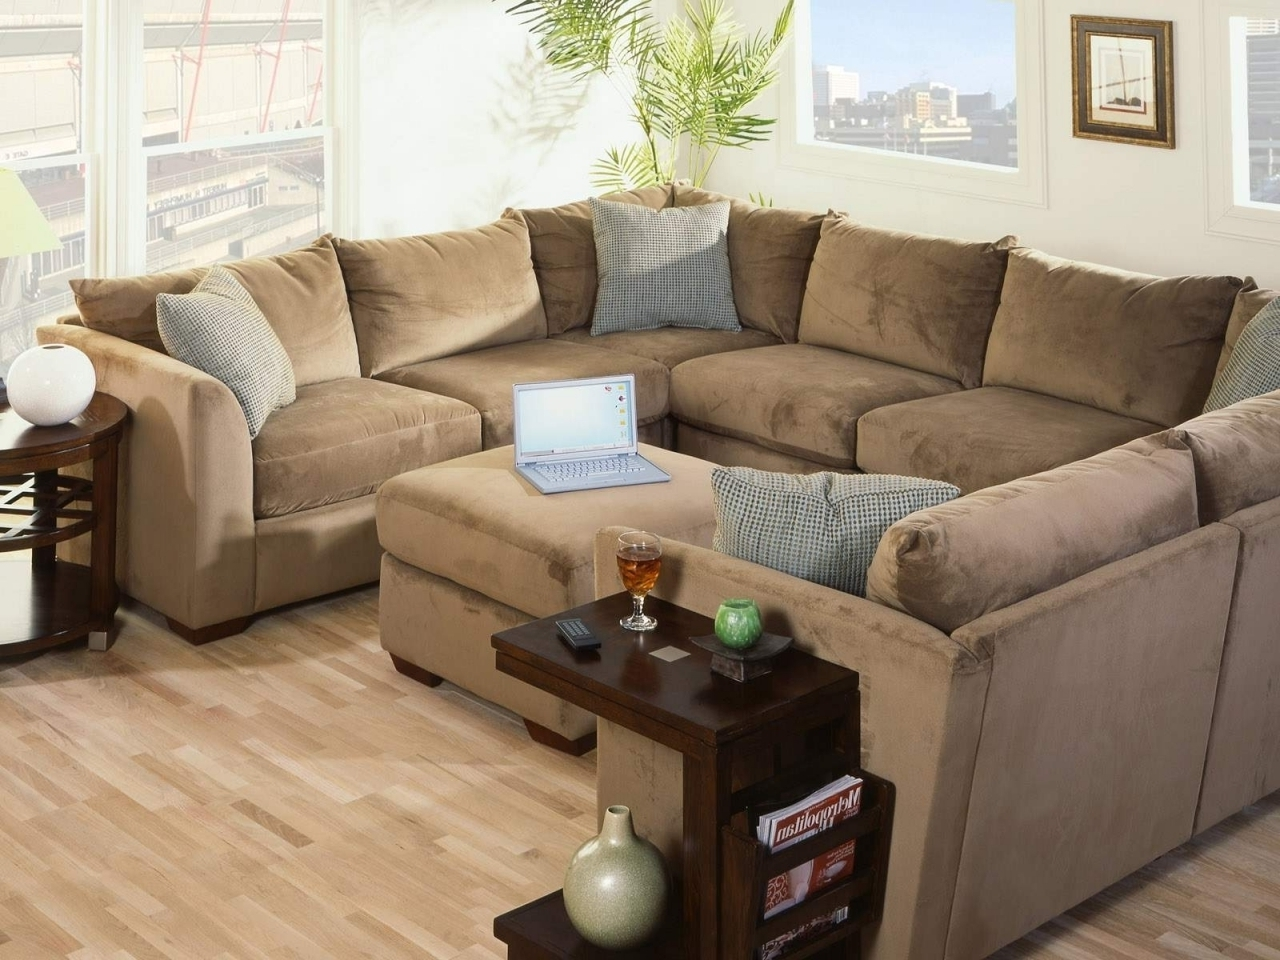 Big Lots Sofas For Most Recent Amazing Sectional Couches Big Lots 77 On Contemporary Sofa (View 4 of 20)